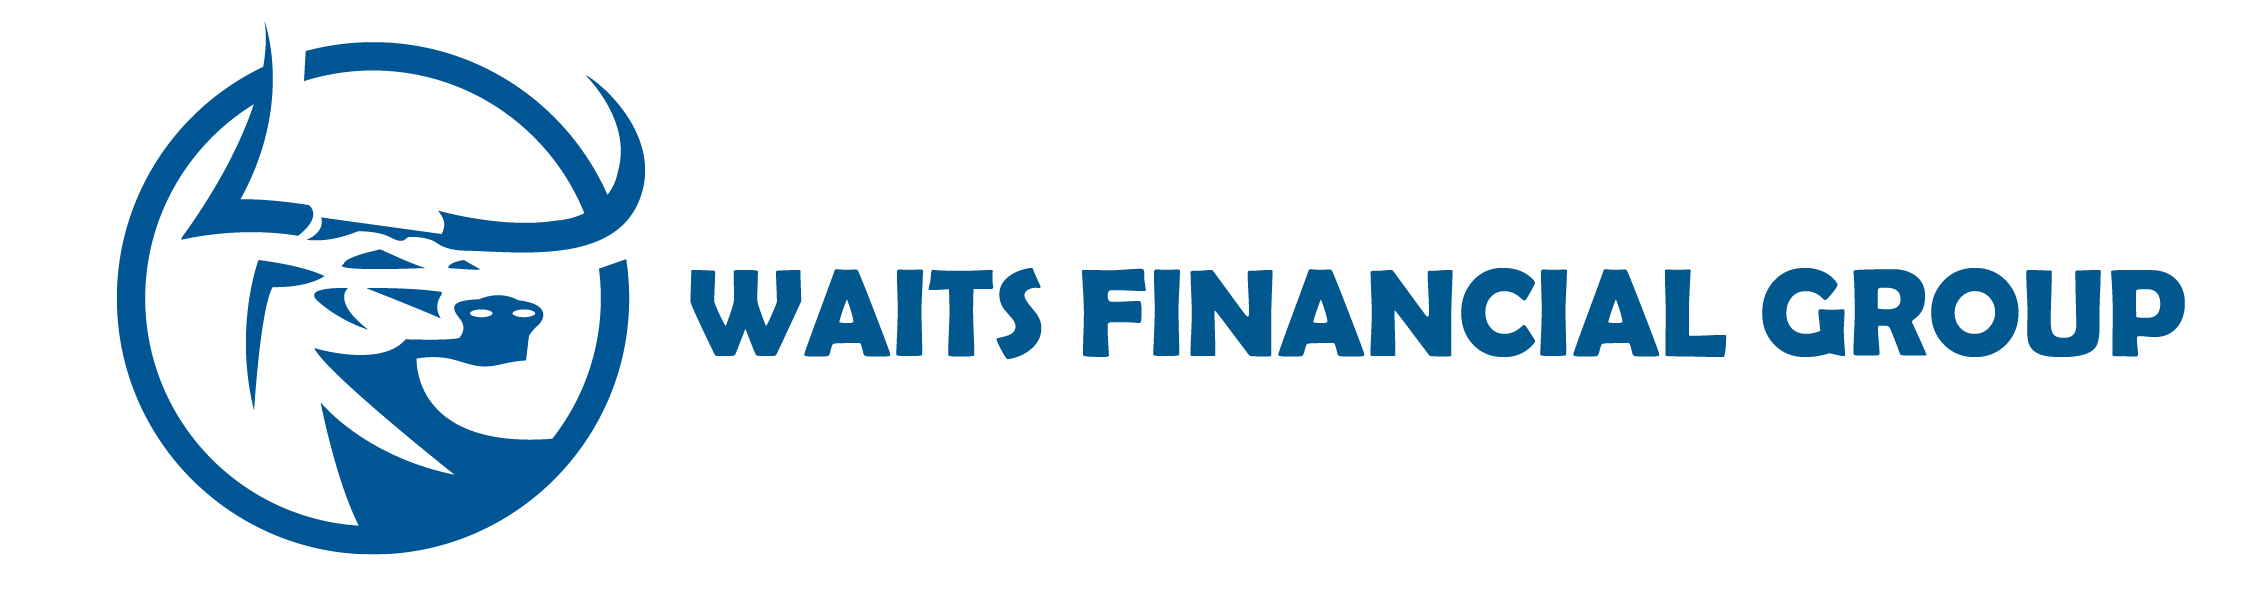 Waits Financial Group